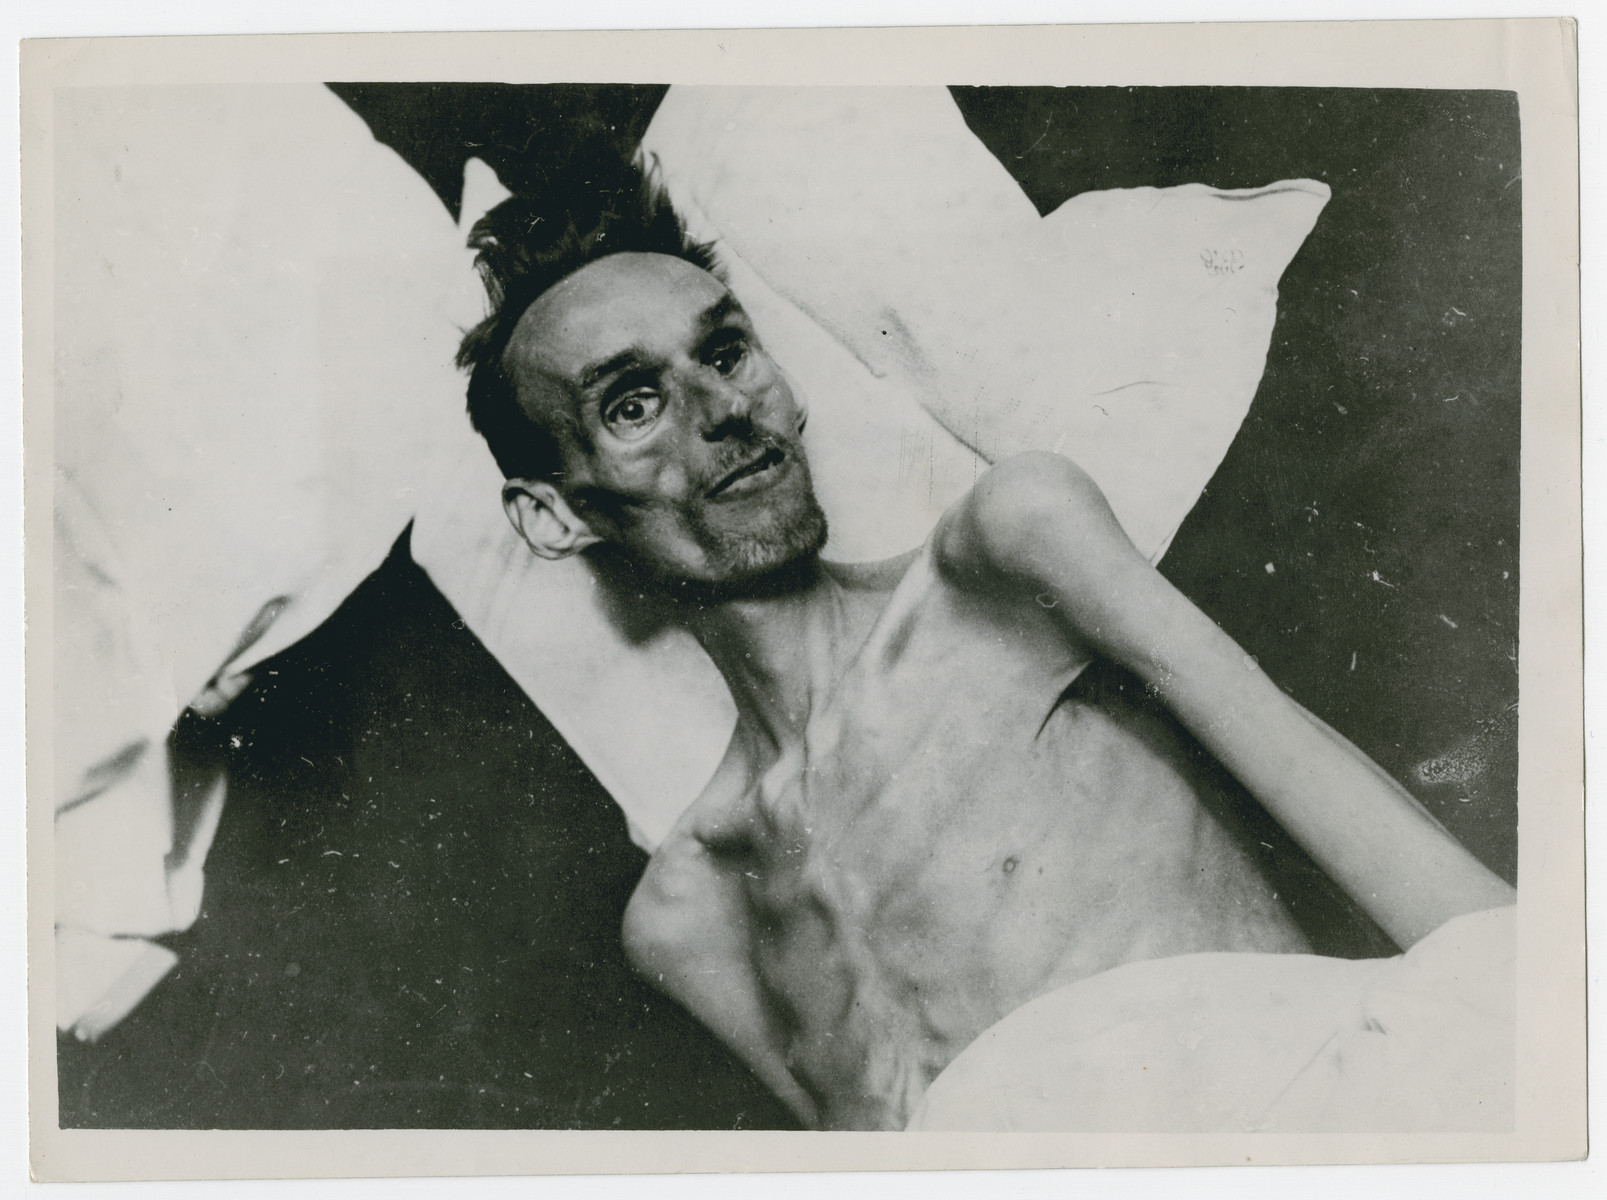 """Close-up portrait of a 37 year old Dutch man who died of starvation in Amsterdam.  Original caption reads:  """"Hundreds die of starvation in Holland.  This man, 37, was one of the 1,200 persons who died of starvation in Amsterdam, Holland, when the Germans destroyed the country's dikes and flooded Dutch farms with seawater.  Before the Allies liberated the Low Countries, they sent more than 2,150 B-17 Flying Fortresses which dropped 2,500 tons of food to the starving population.  When the Germans were pushed back, land vehicles and ships rushed food to Holland""""."""